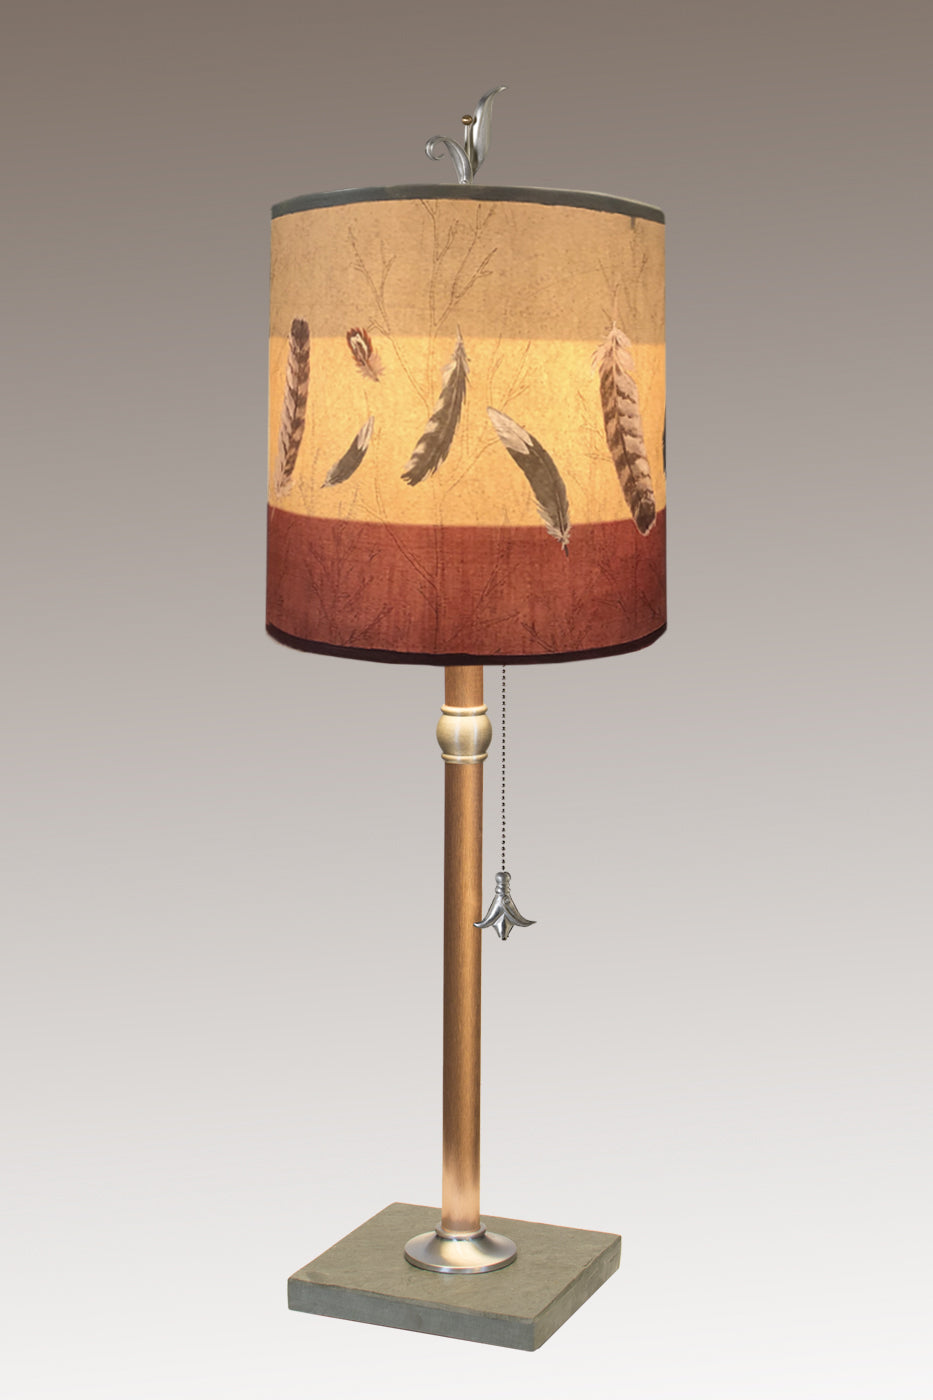 Copper Table Lamp with Medium Drum Shade in Feathers in Ruby